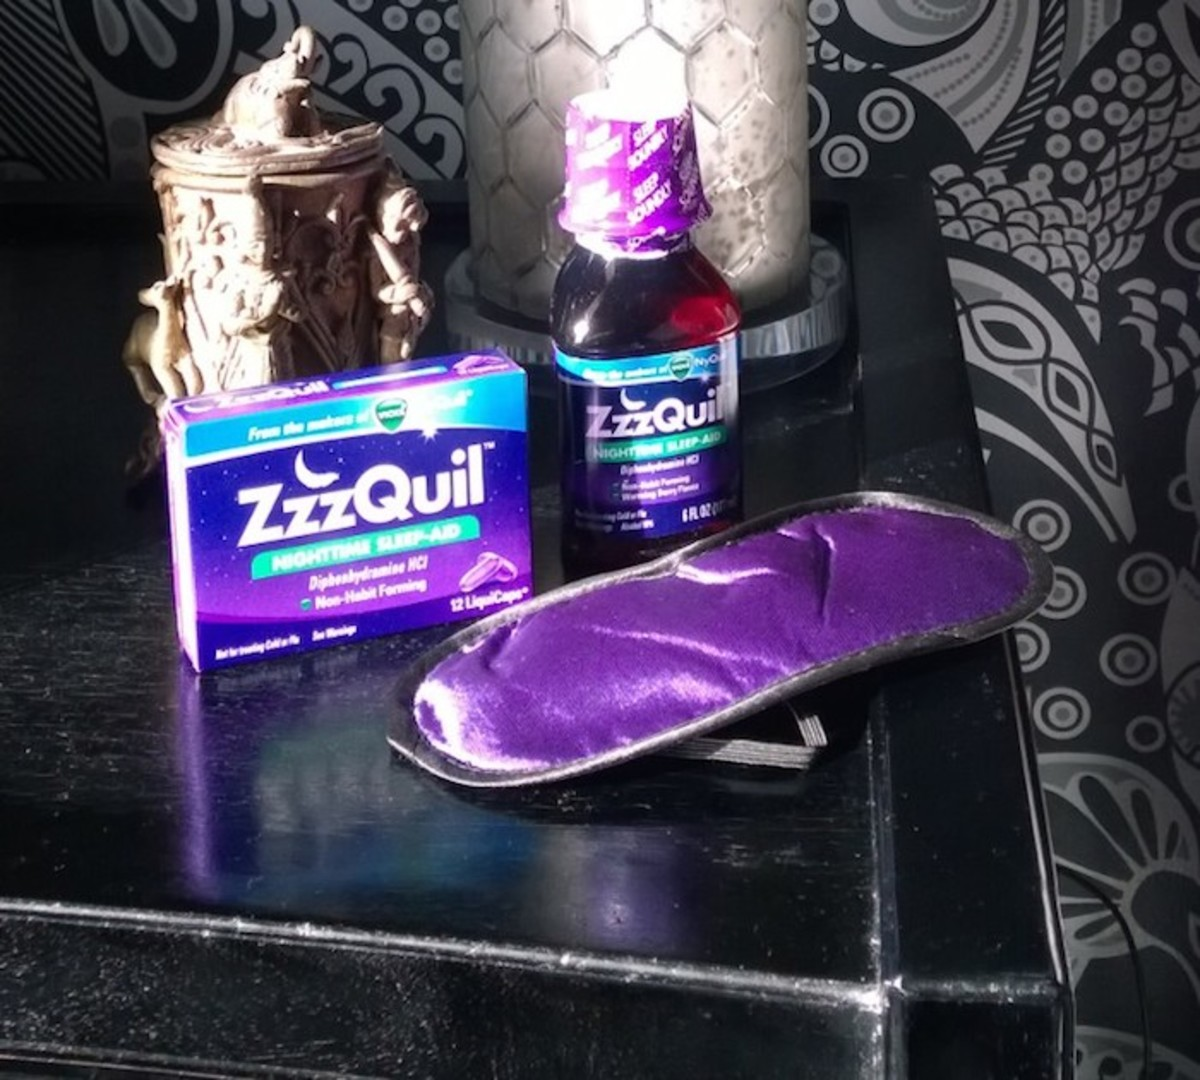 zzzquil for sleep